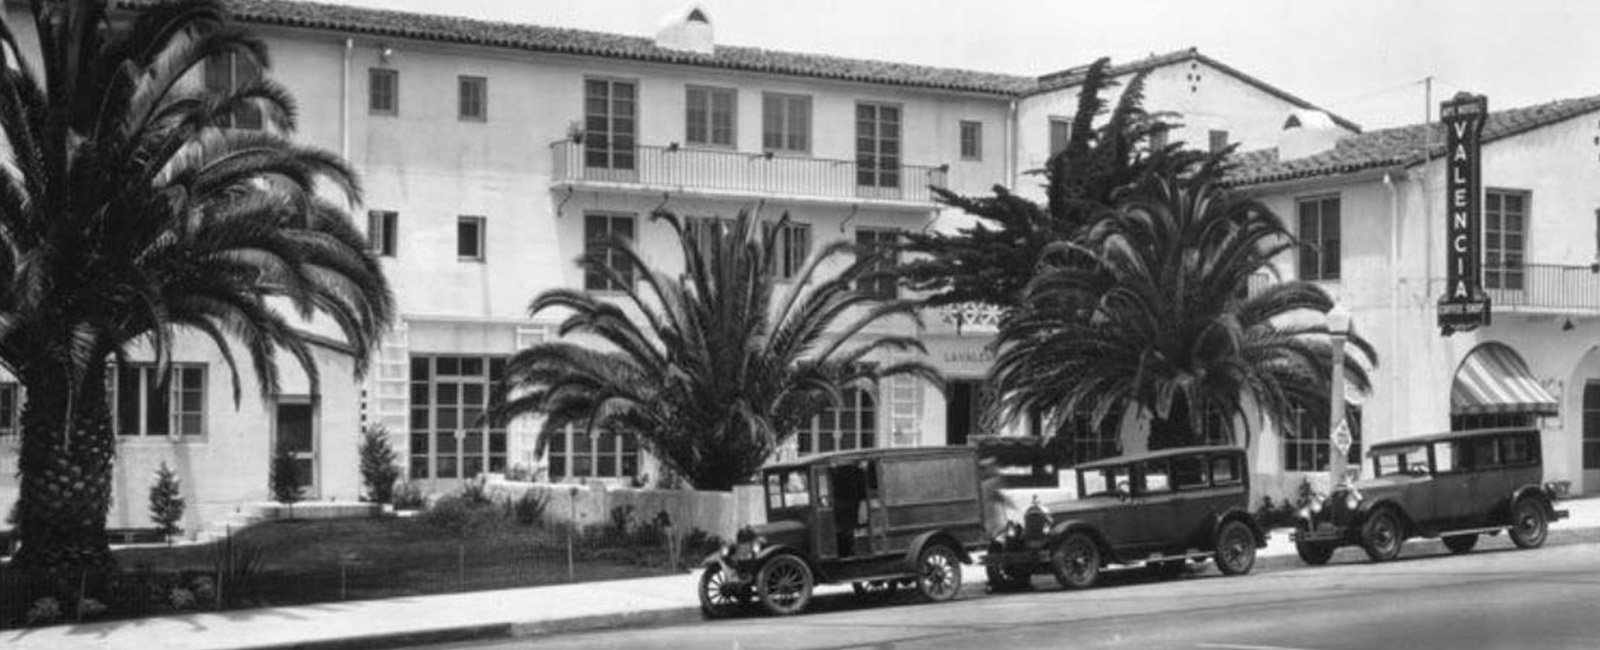 History of La Valencia Hotel California